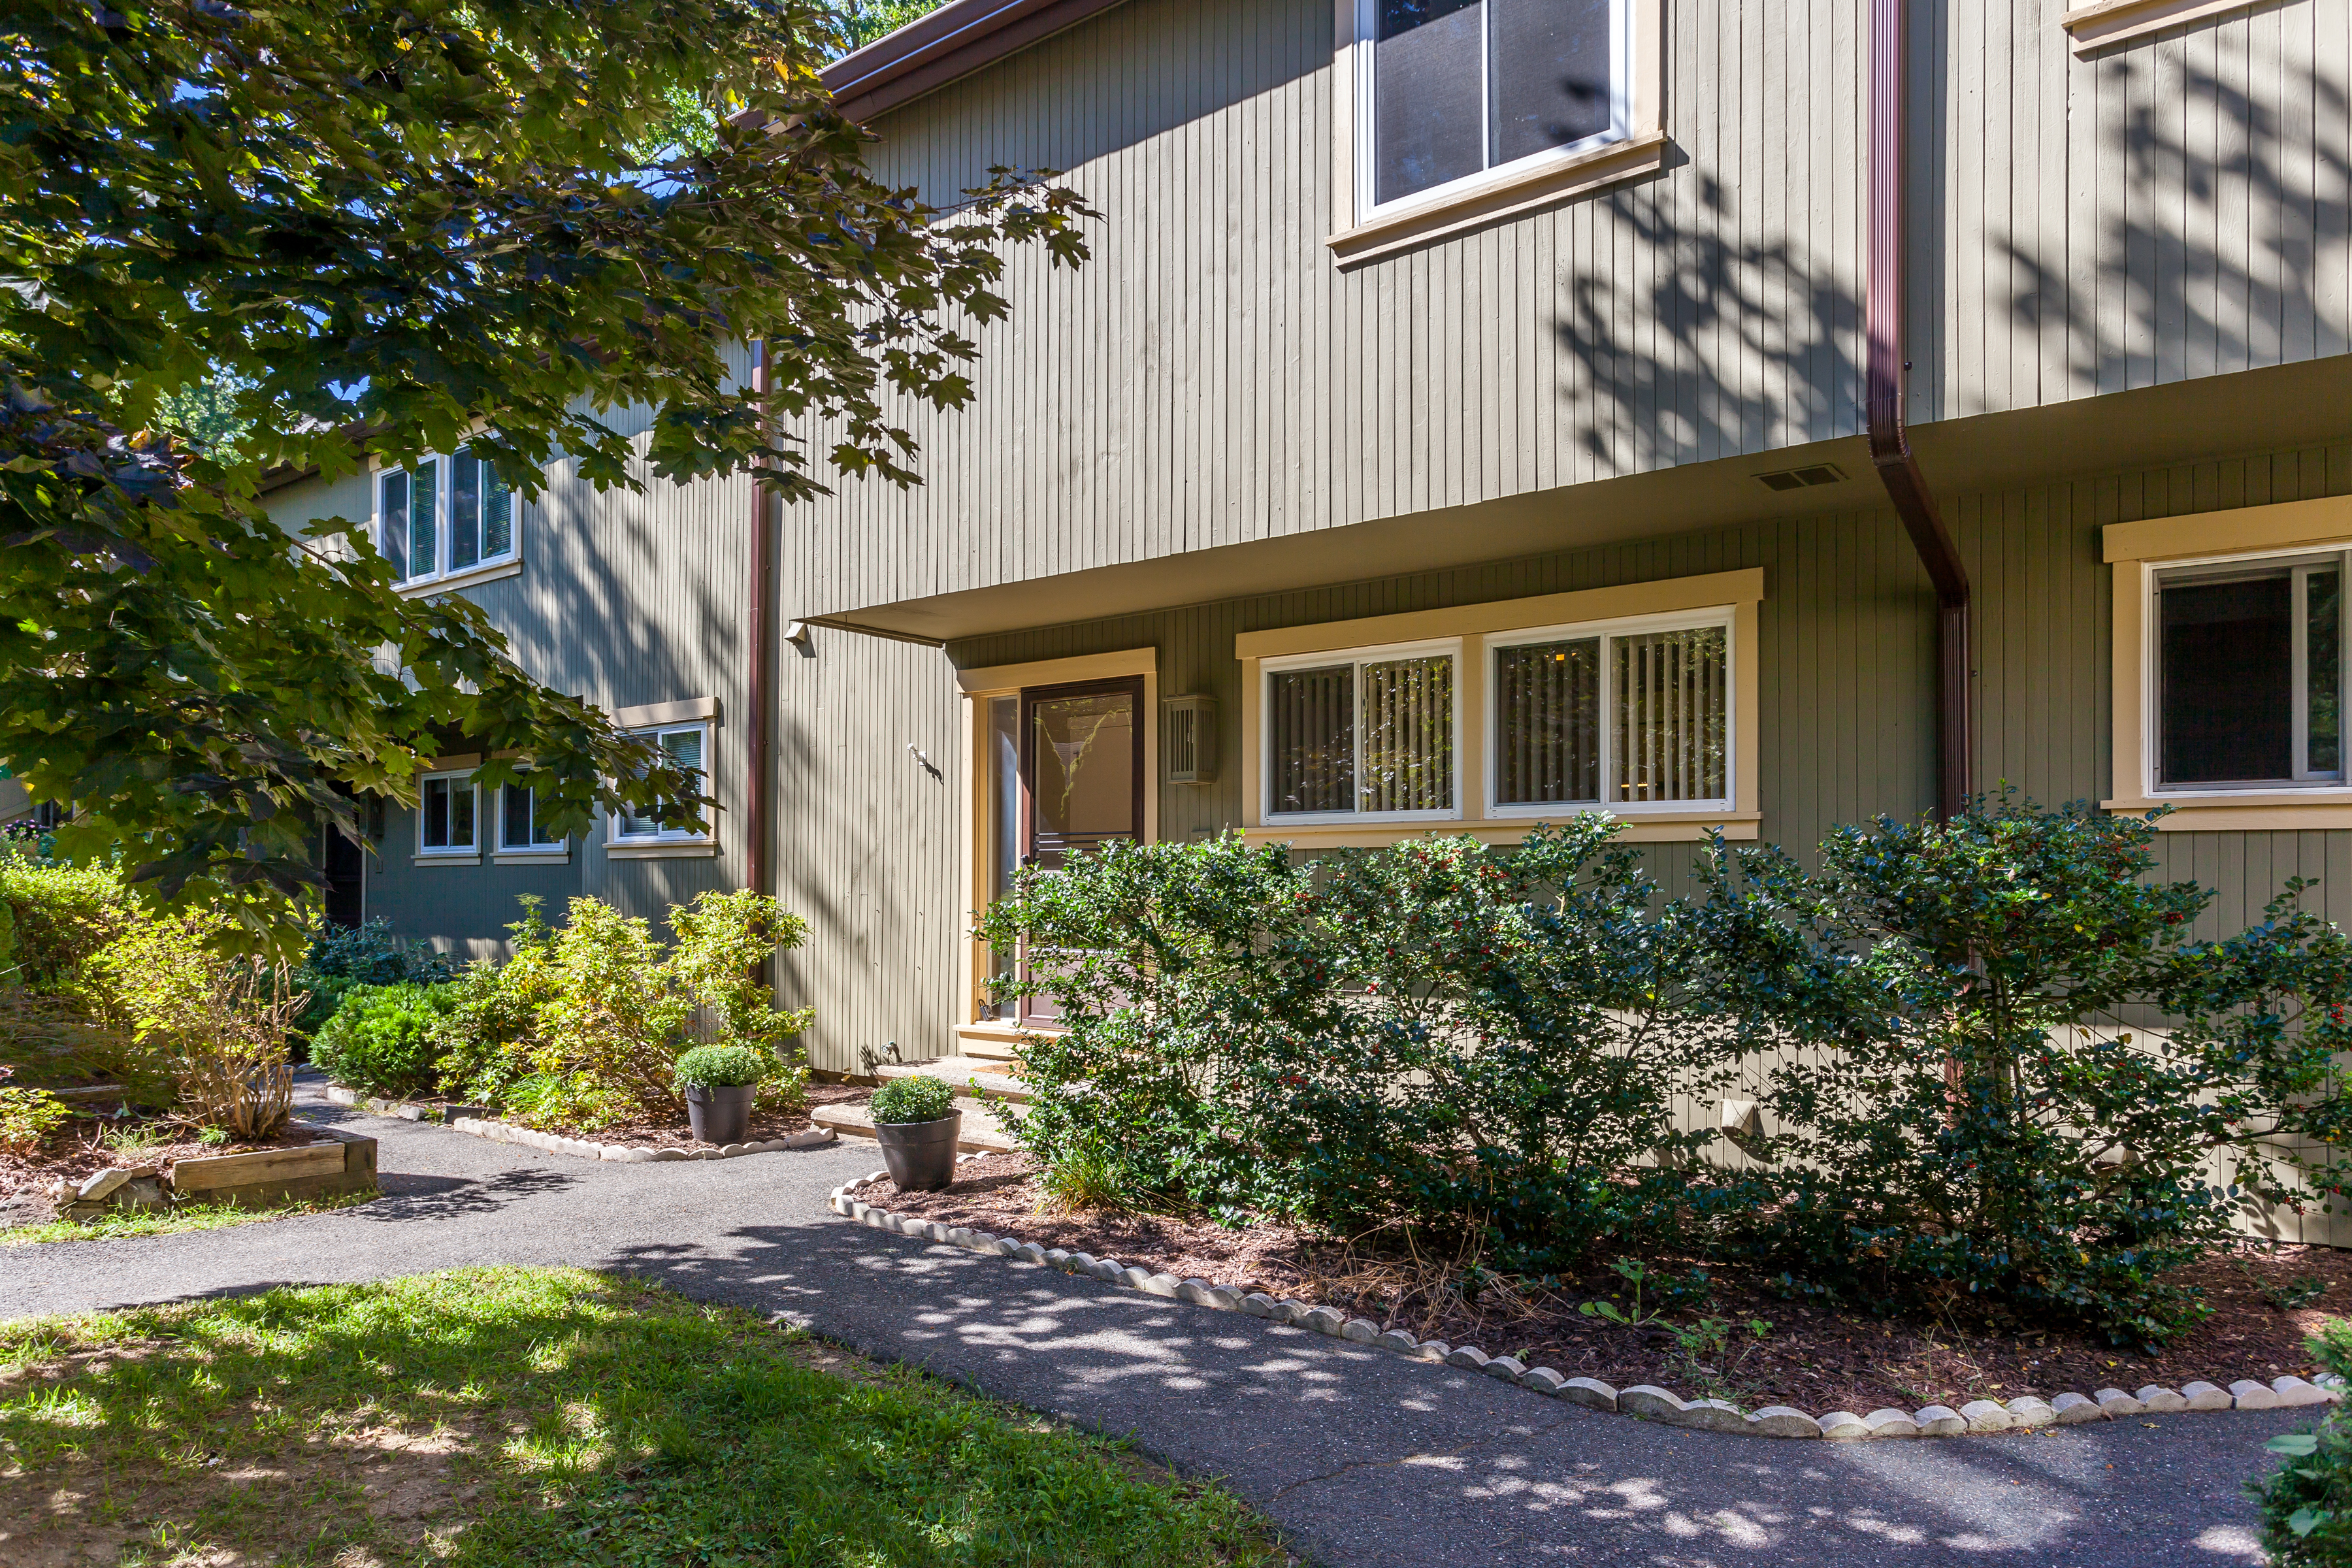 Condominium for Sale at Condo Living in The Country 8 South Meadows 8 Woodbury, Connecticut, 06798 United States